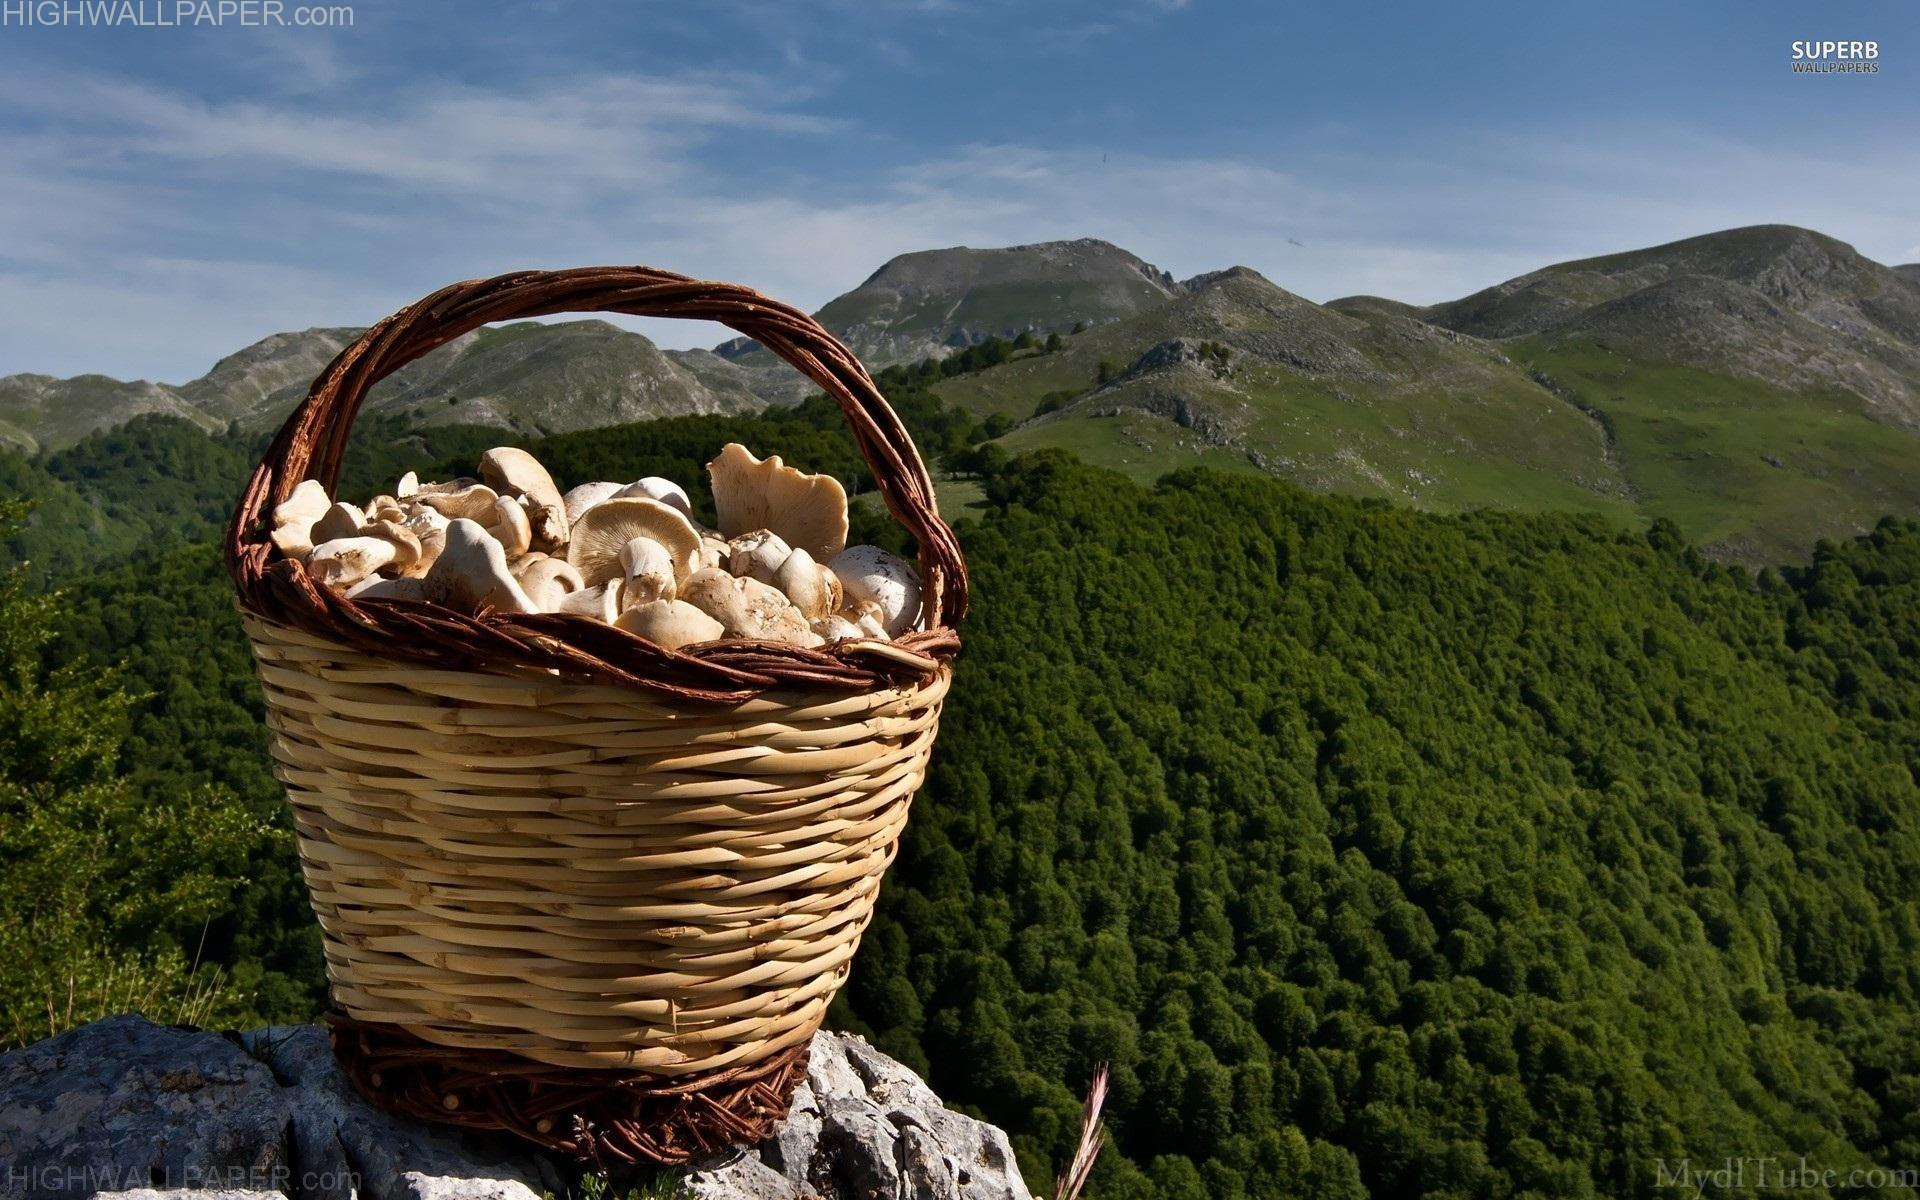 Basket Full of Mashrooms